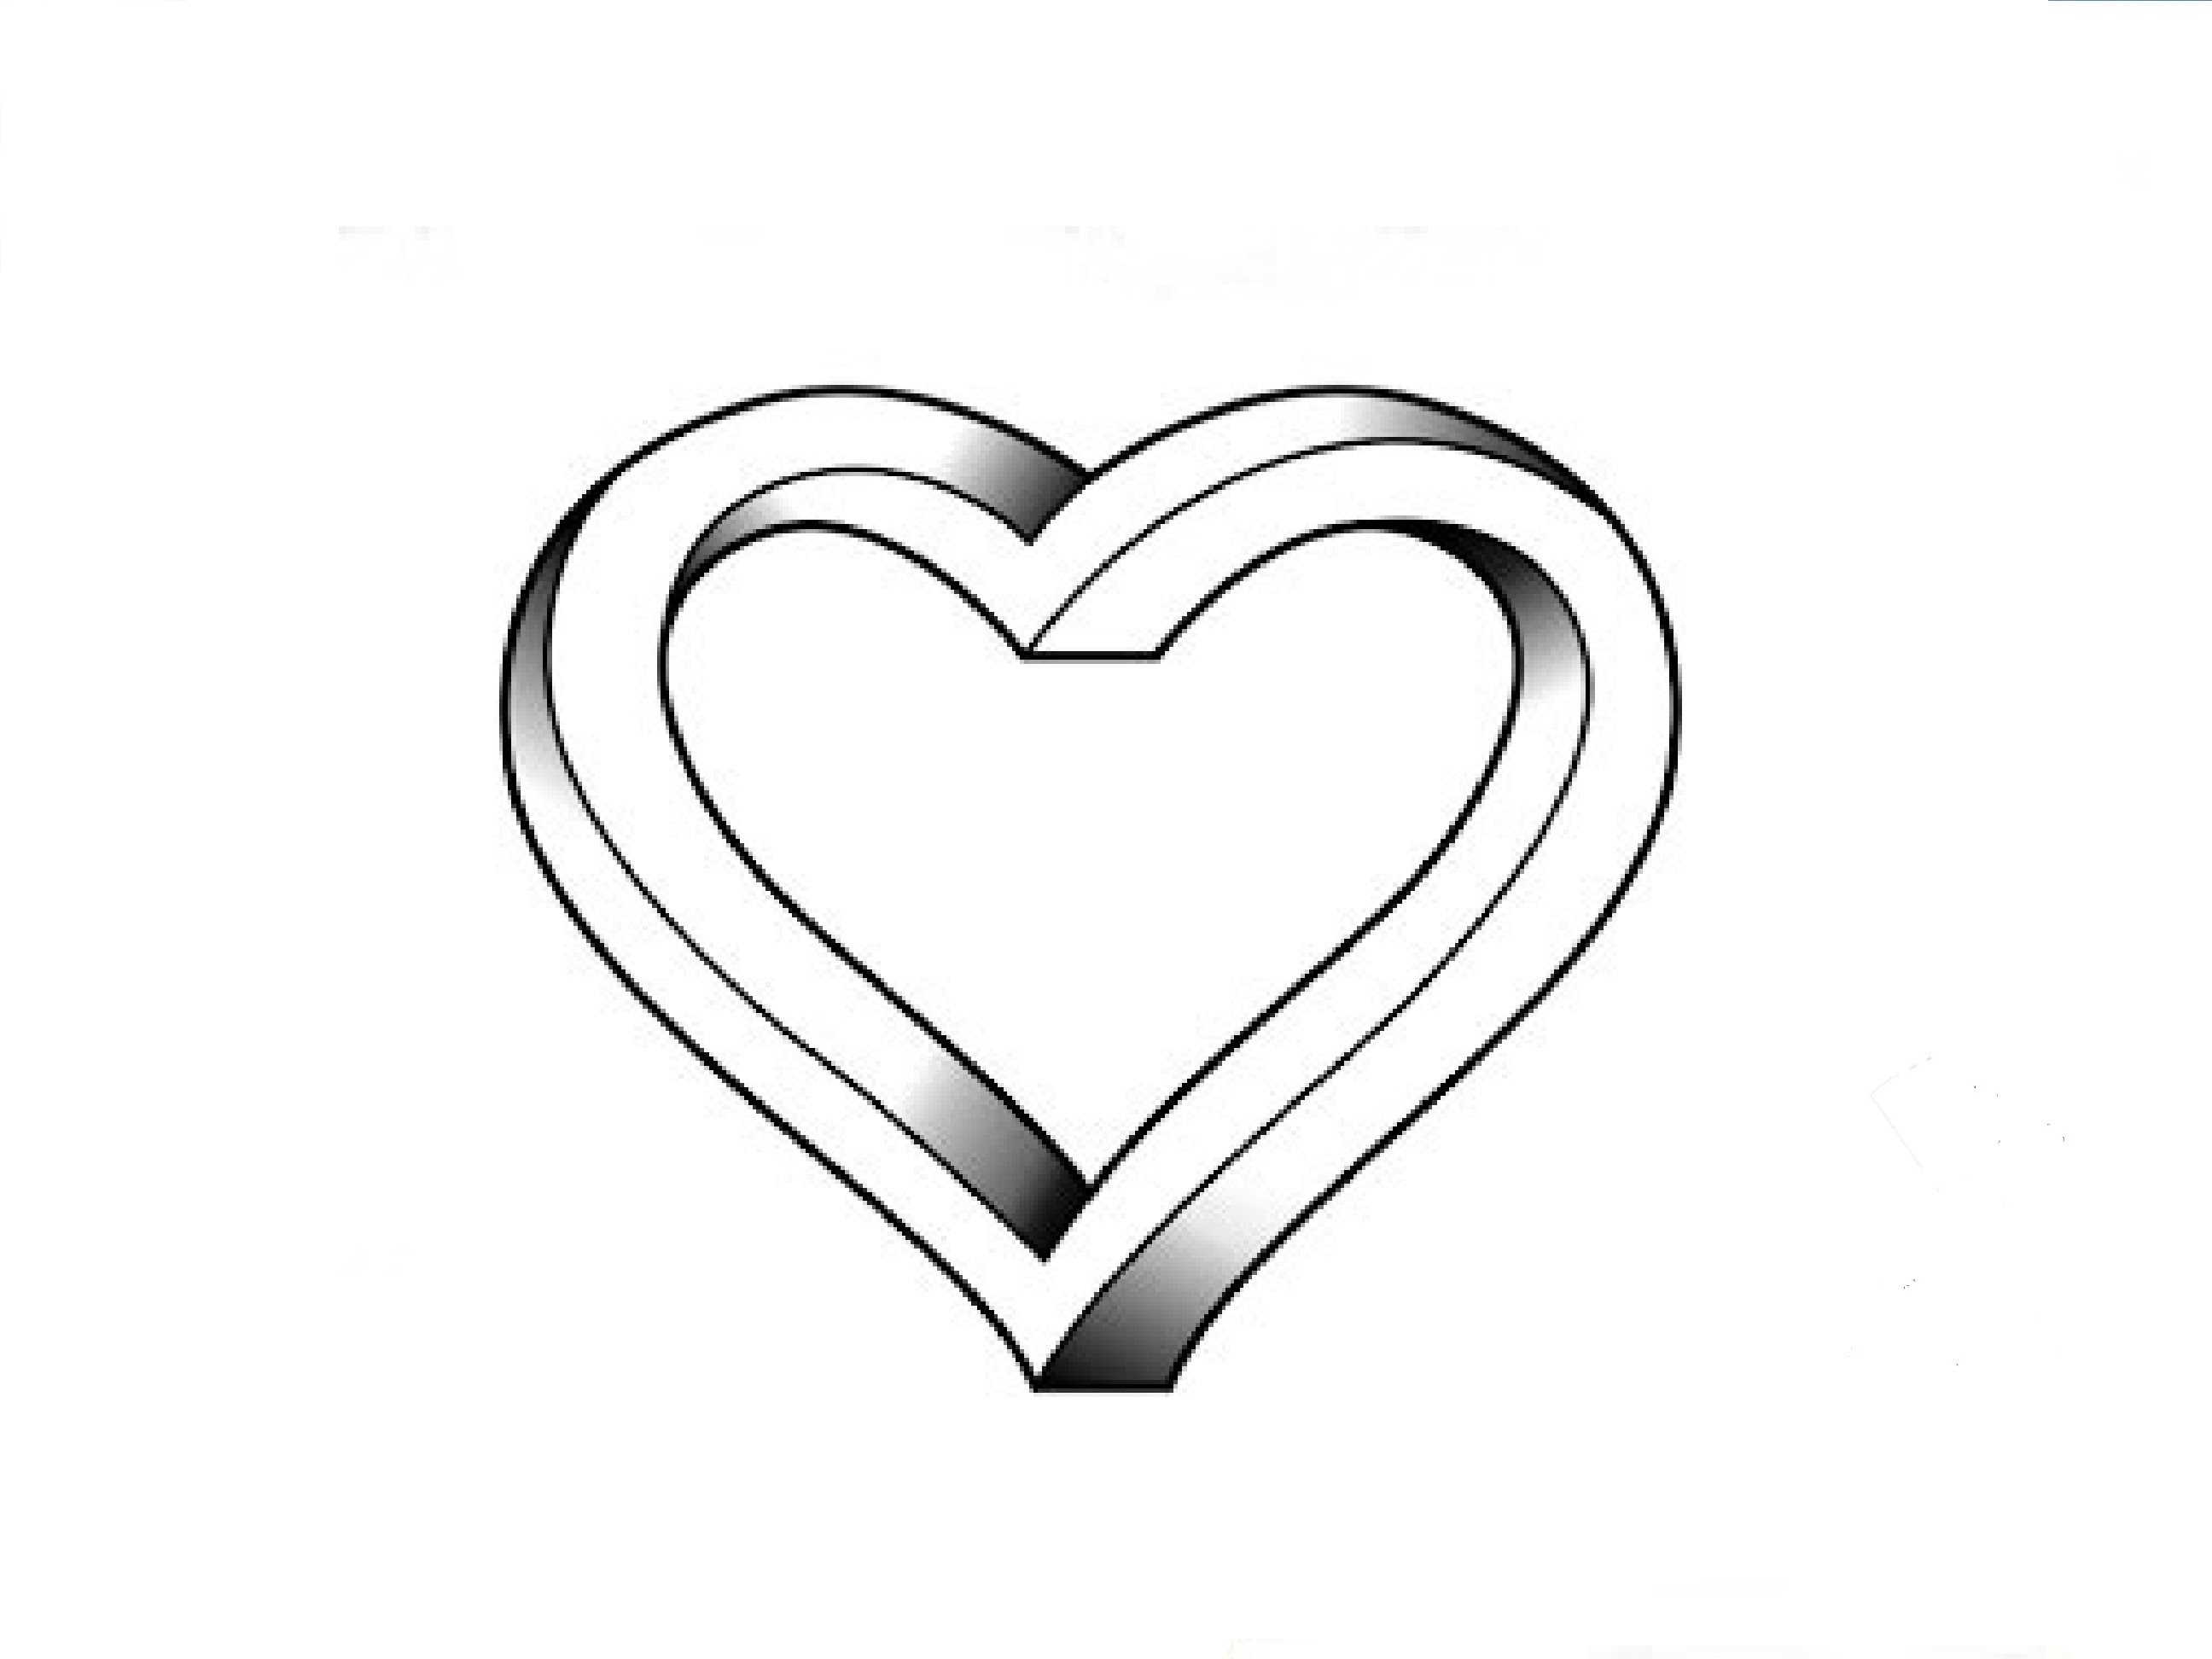 Line Drawing Heart